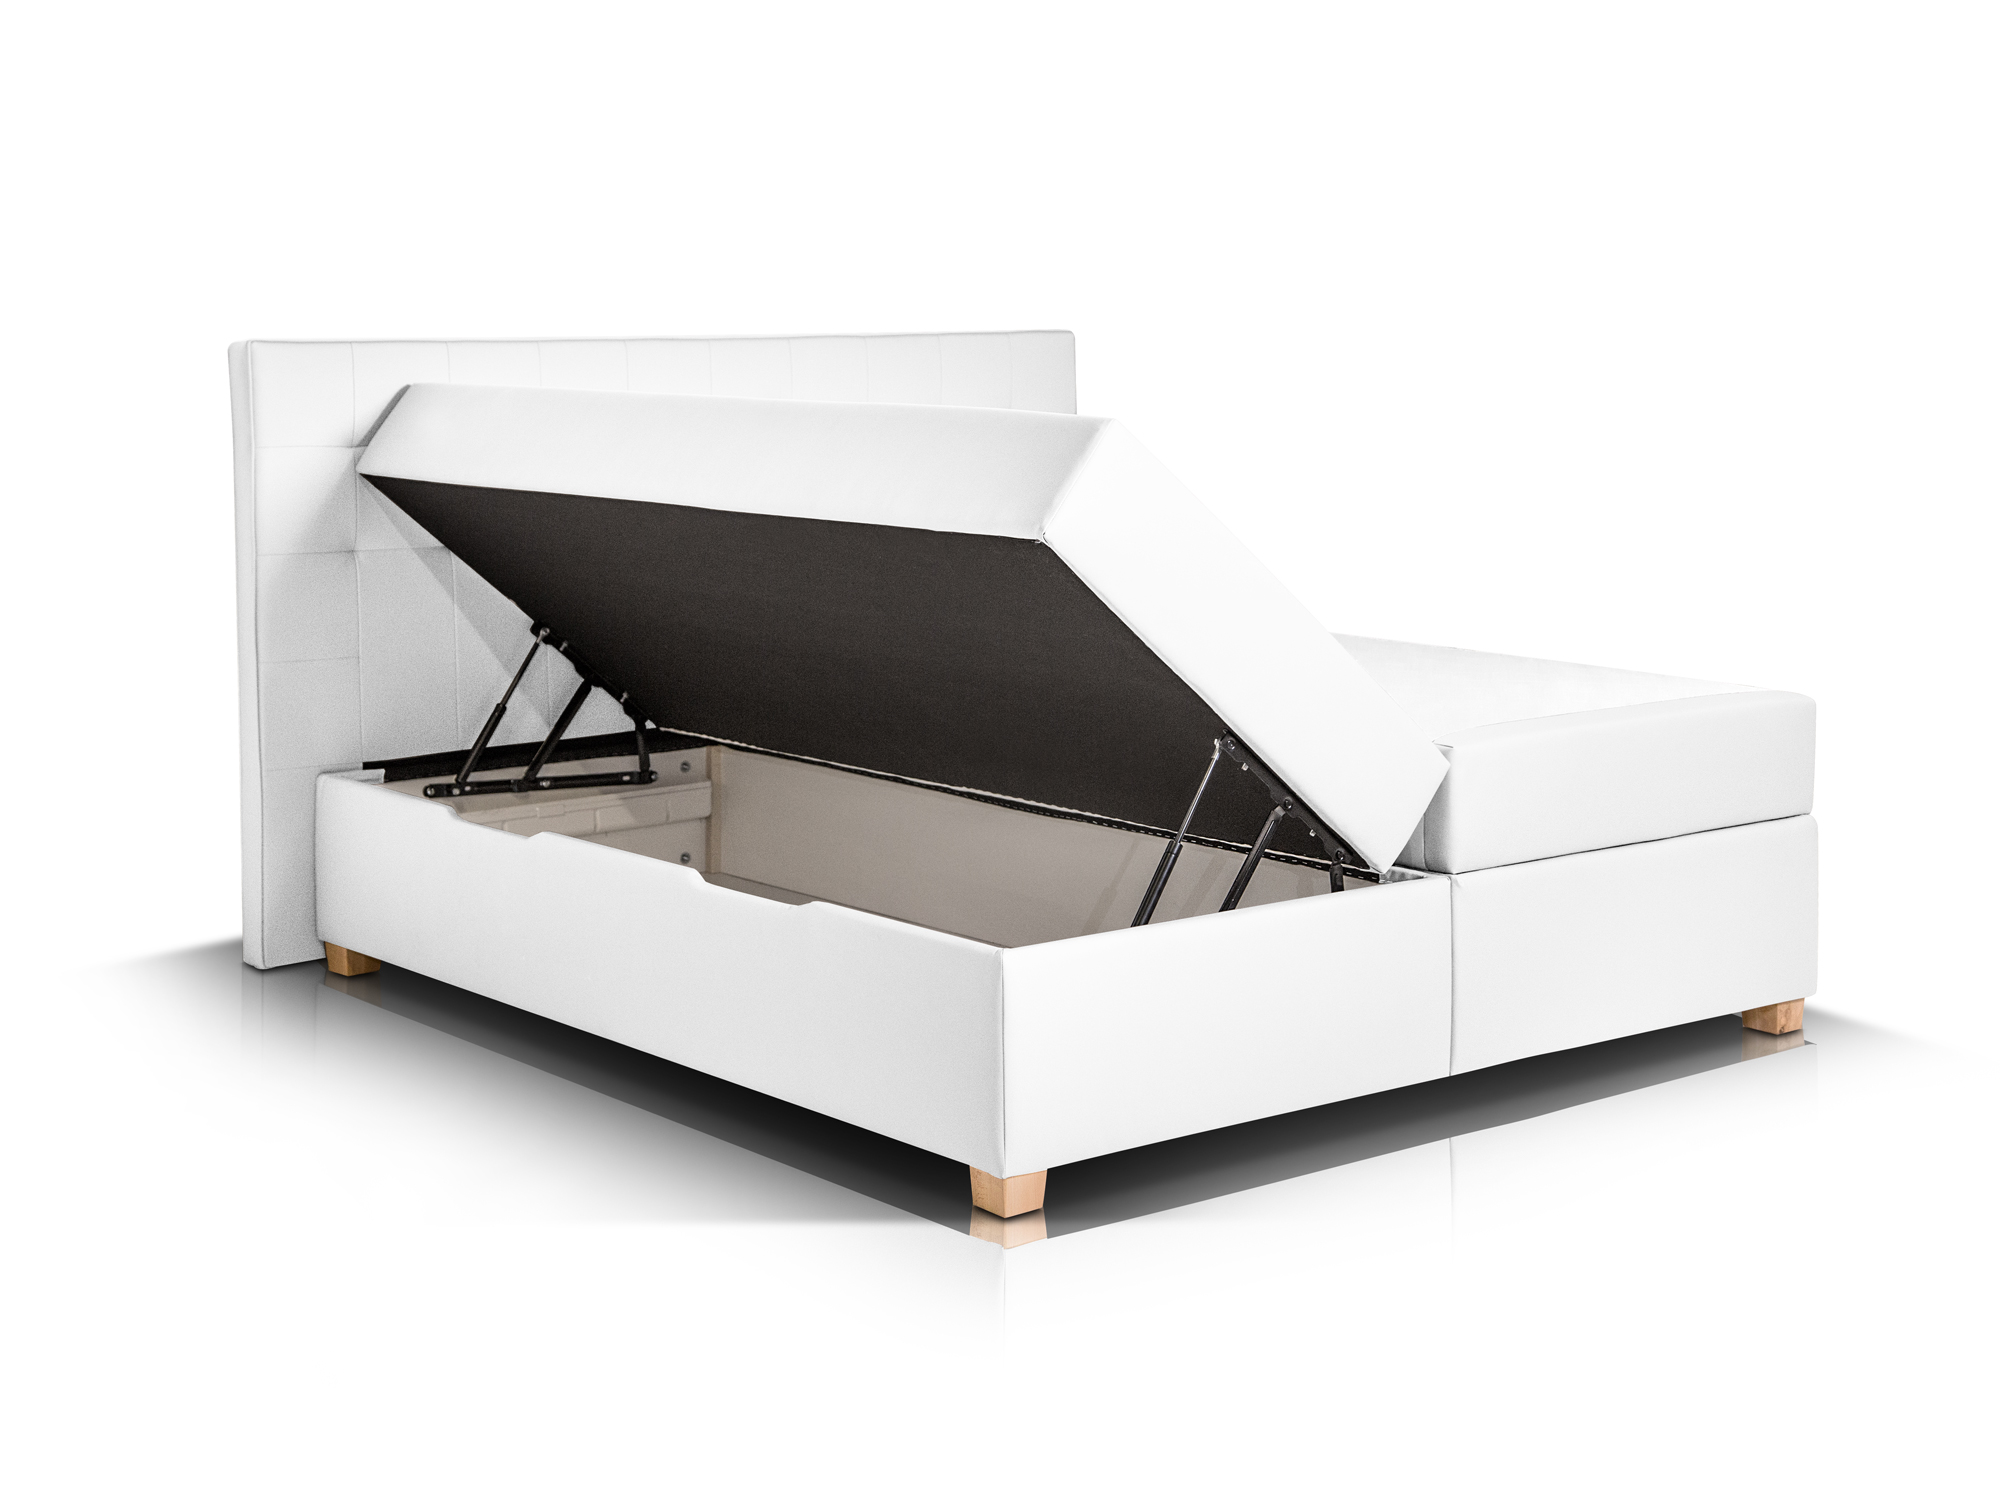 ida boxspringbett kunstleder mit bettkasten 180 x 200 cm weiss h rtegrad 3. Black Bedroom Furniture Sets. Home Design Ideas